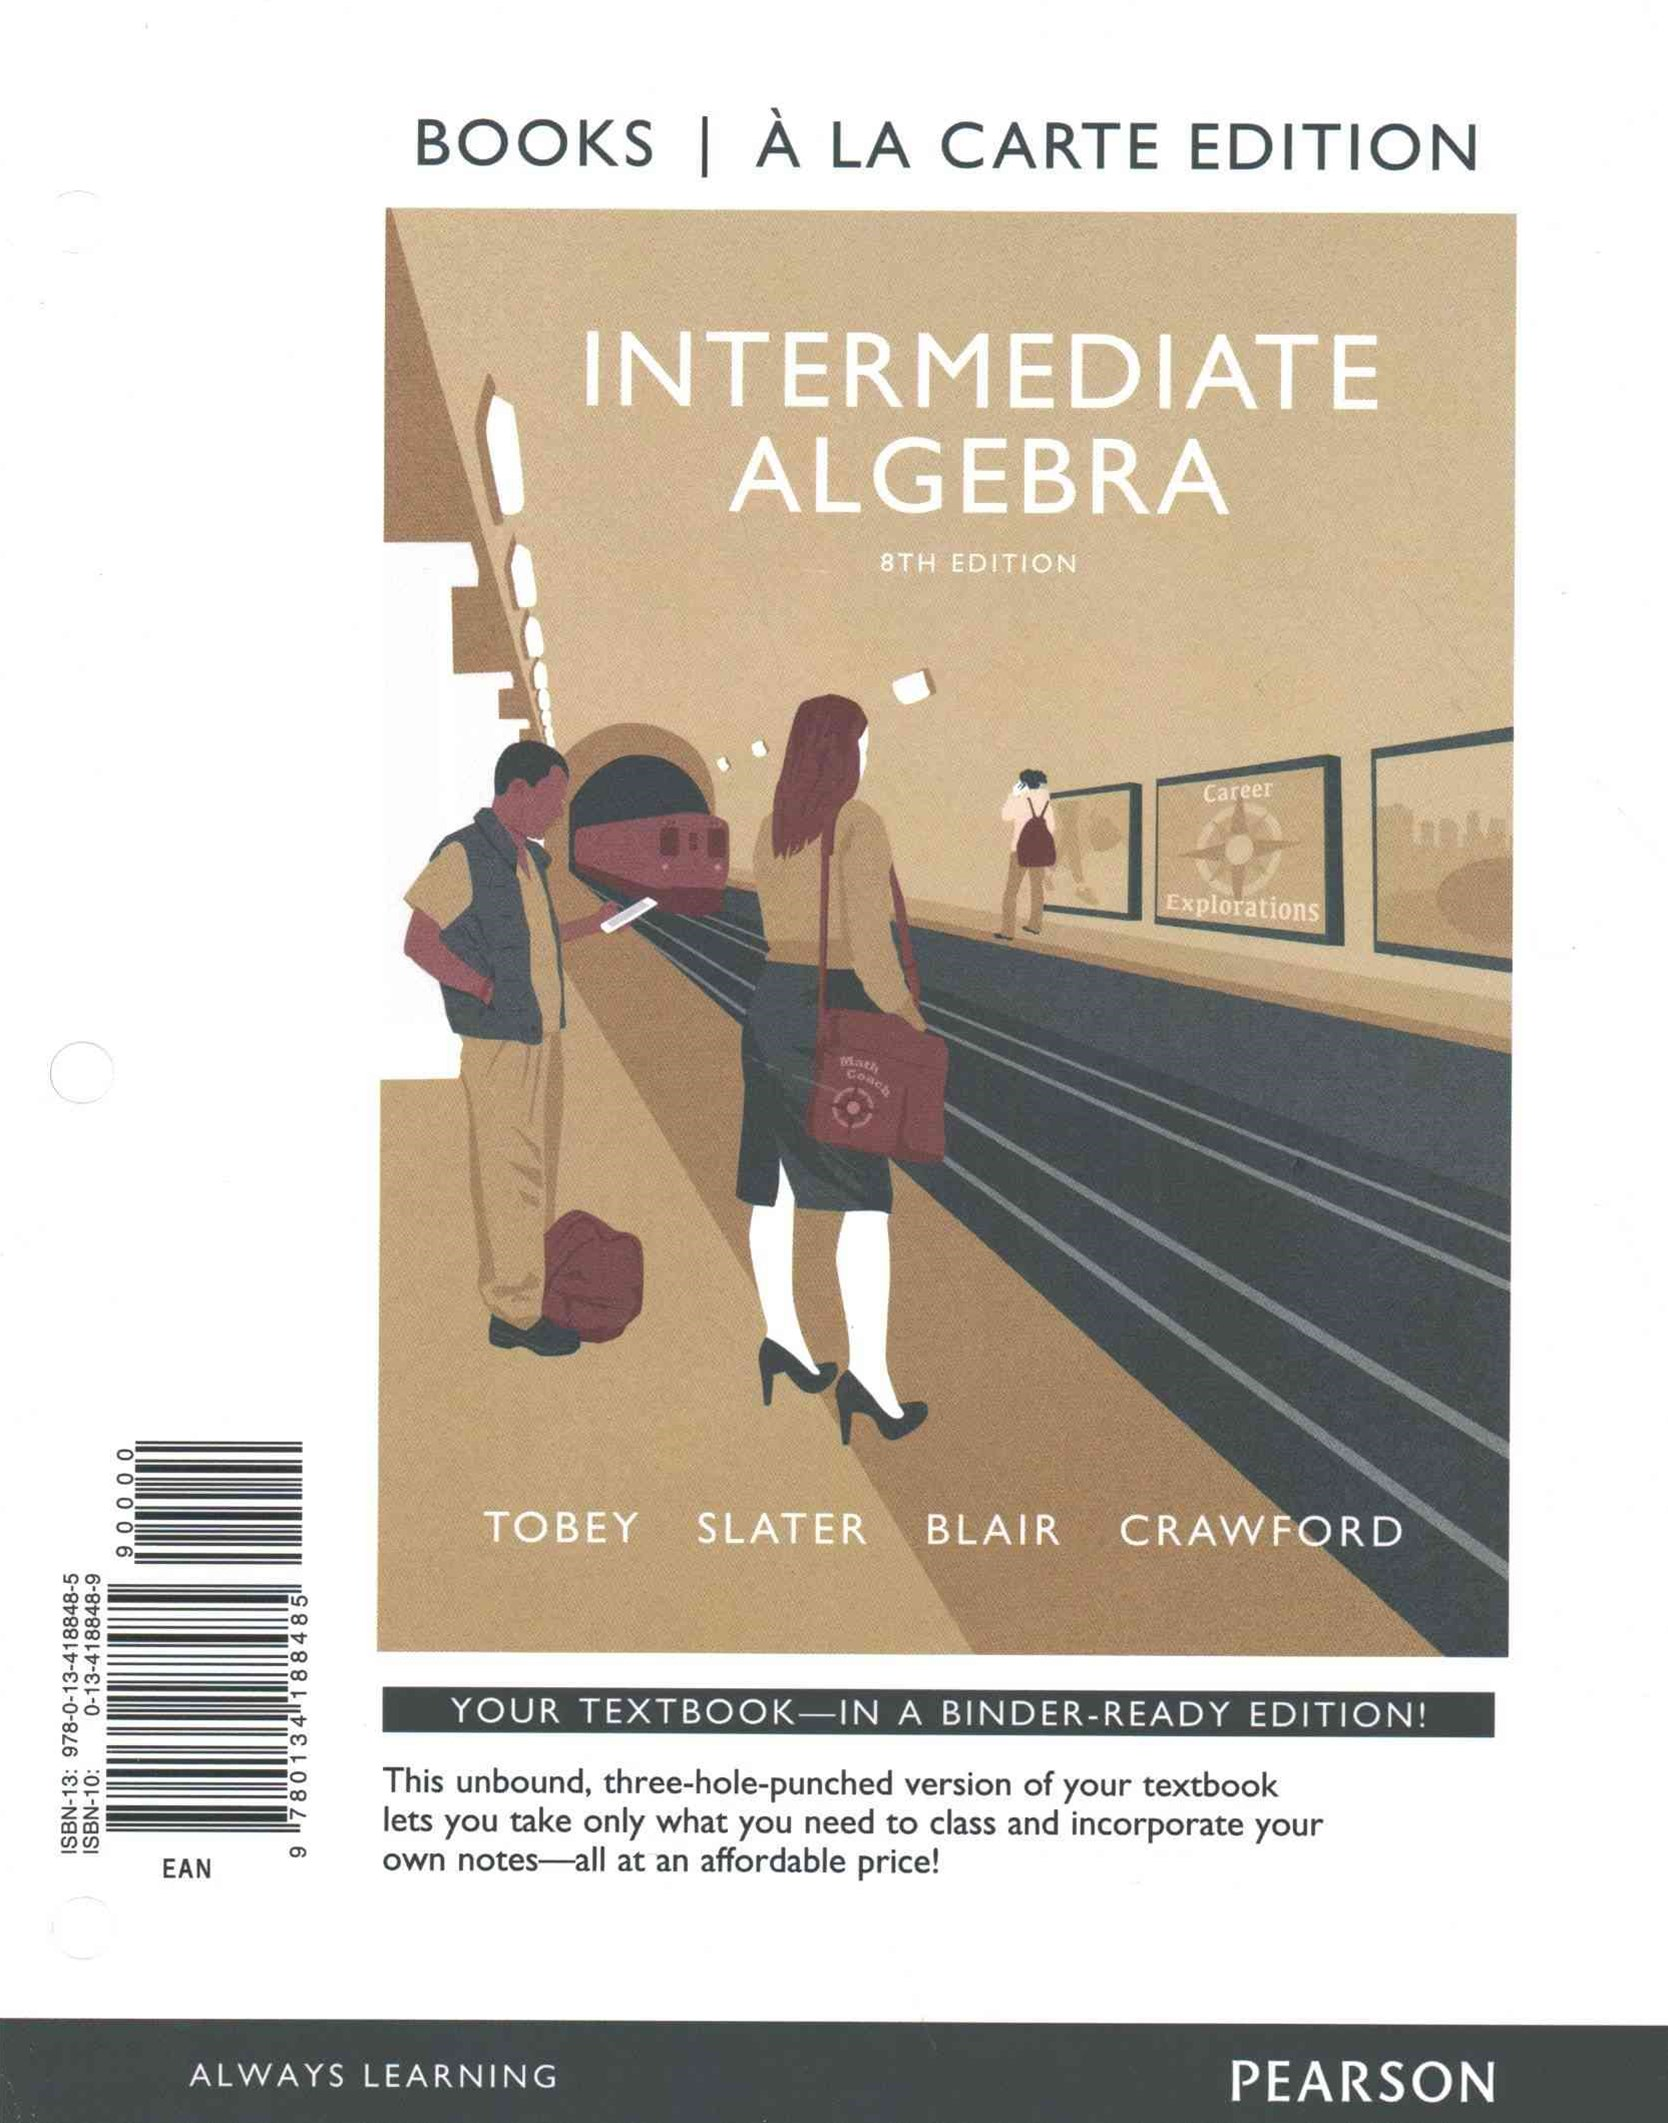 Intermediate Algebra with Integrated Review Books a la Carte Edition PLUS MyMathLab PLUS Wkshts